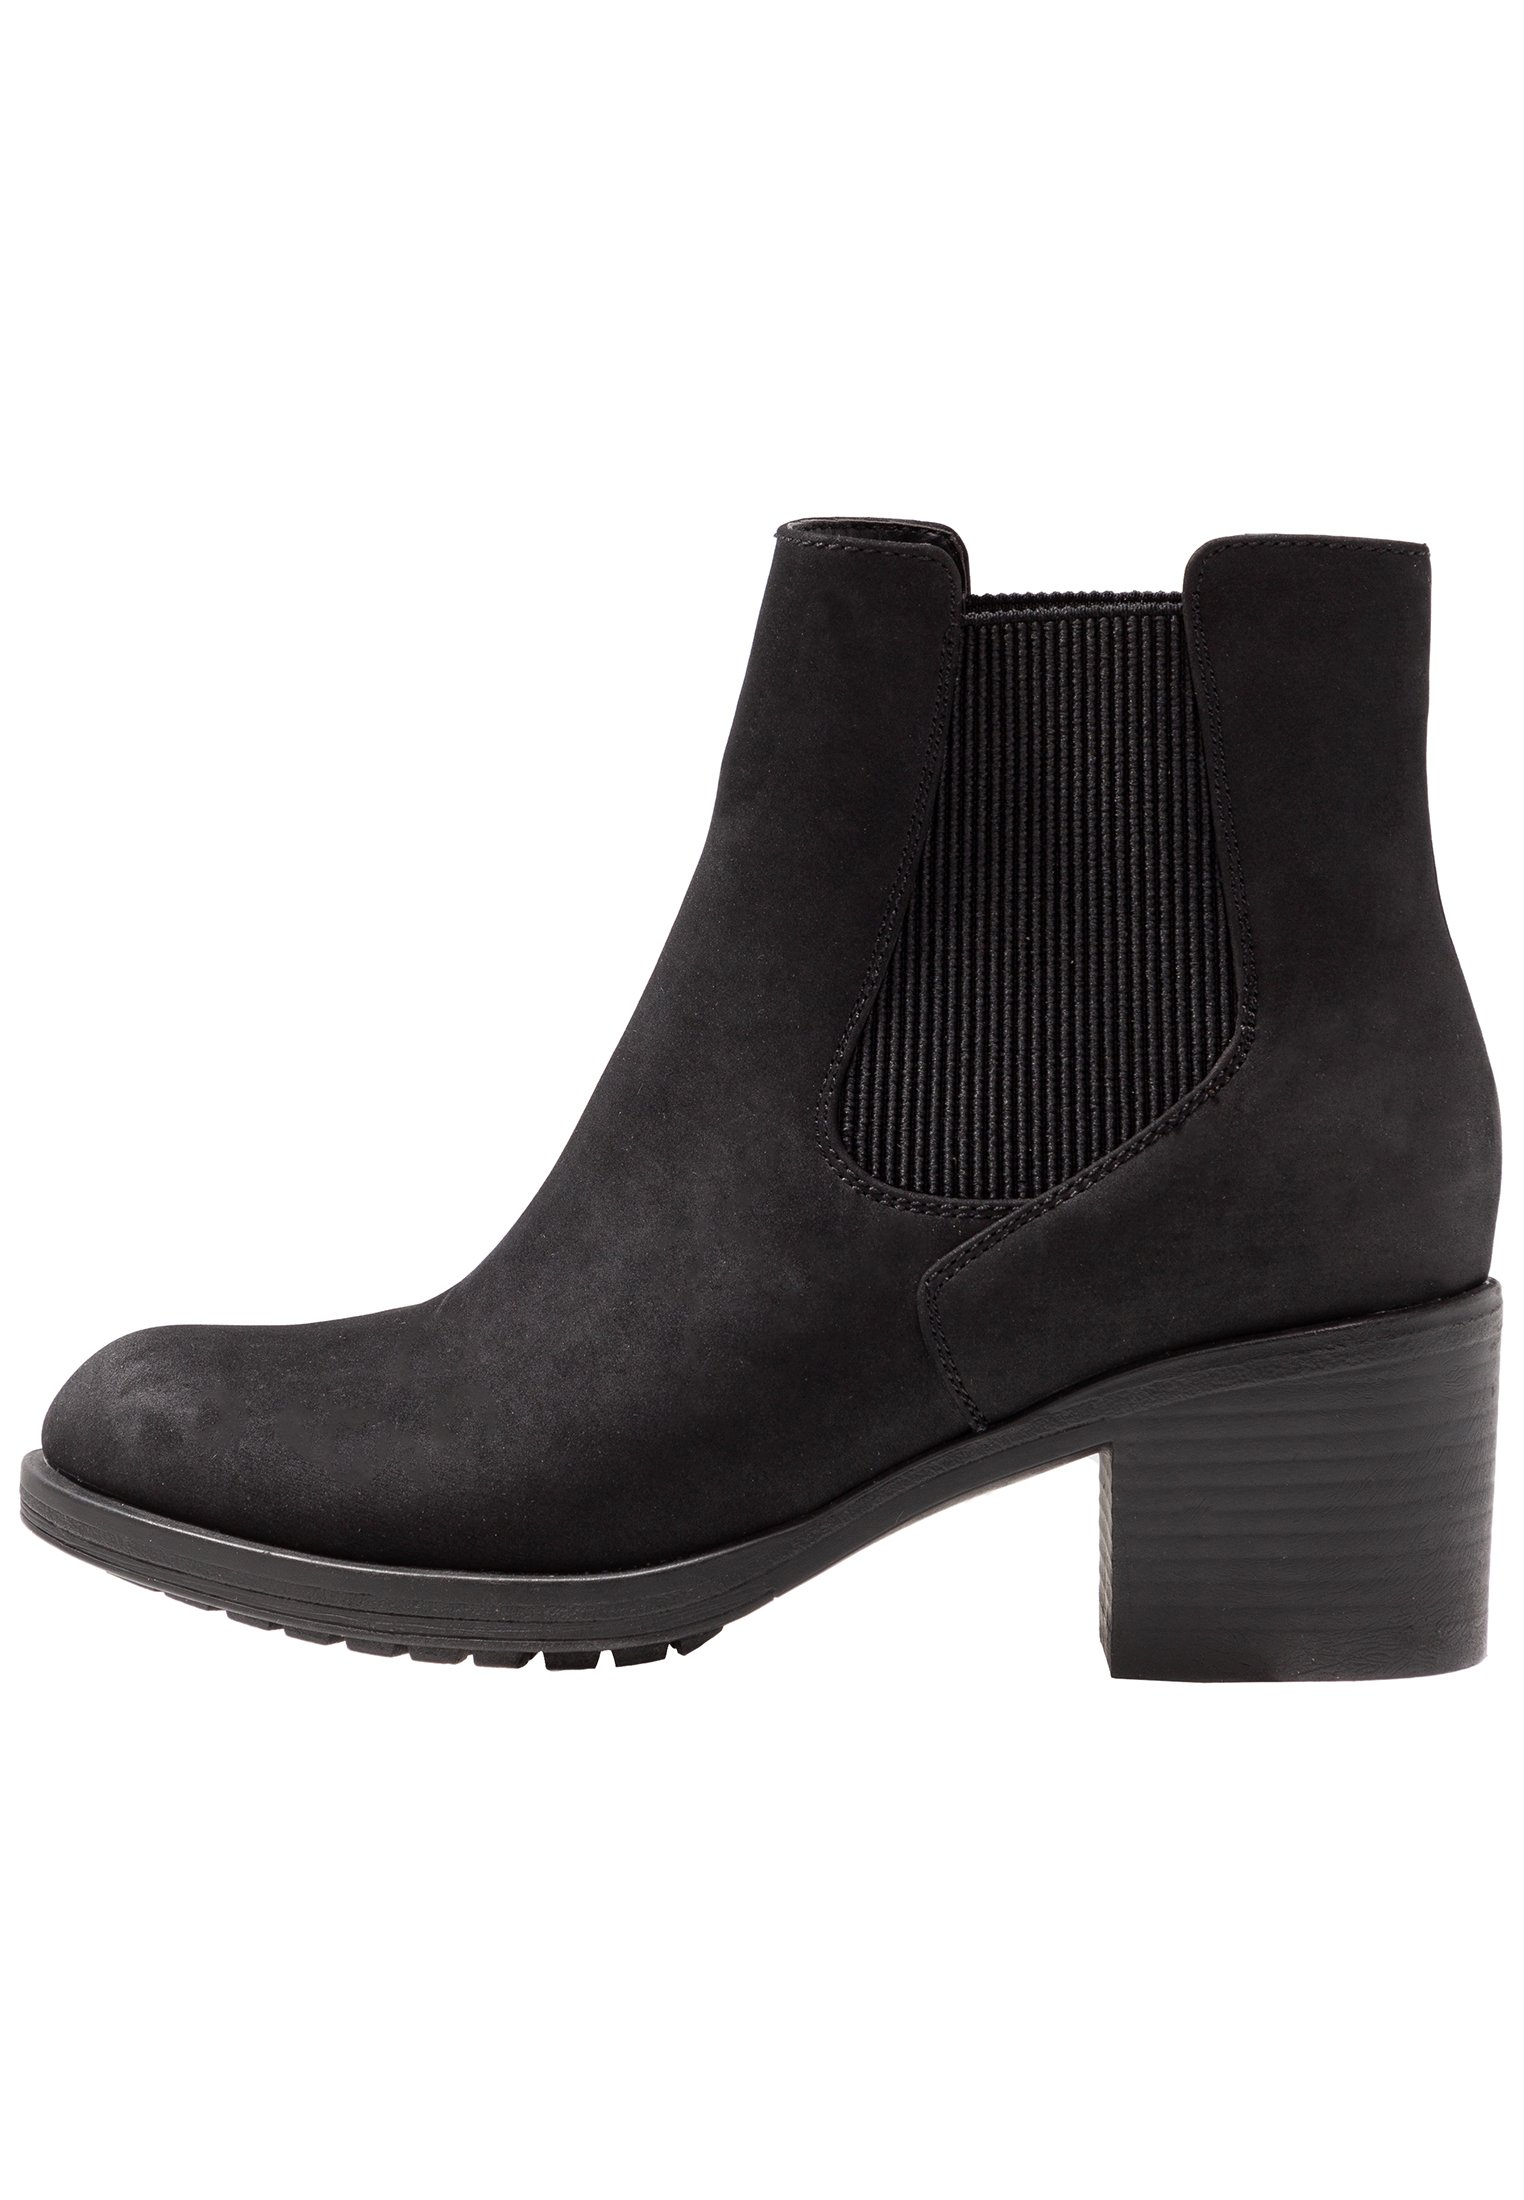 Anna Field Ankle Boot - Black/schwarz